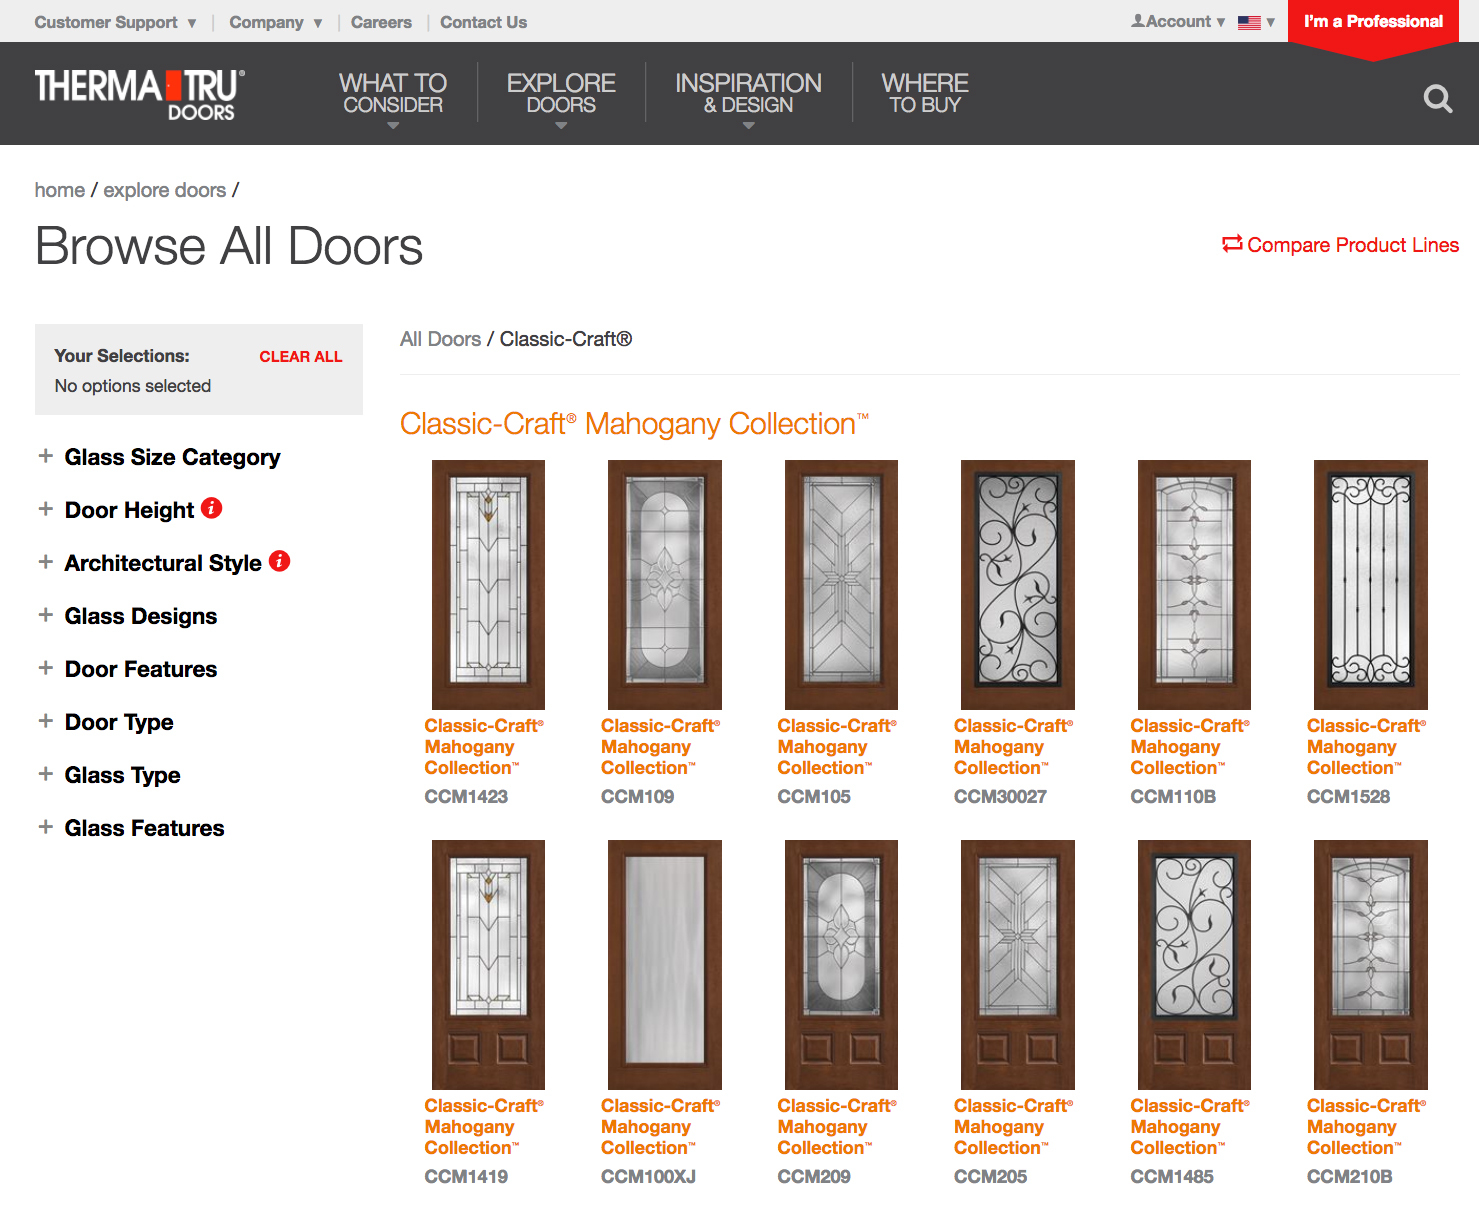 Therma-Tru Launches New Website and Smartphone App for Entry Door Selection | Business Wire  sc 1 st  Business Wire & Therma-Tru Launches New Website and Smartphone App for Entry Door ...